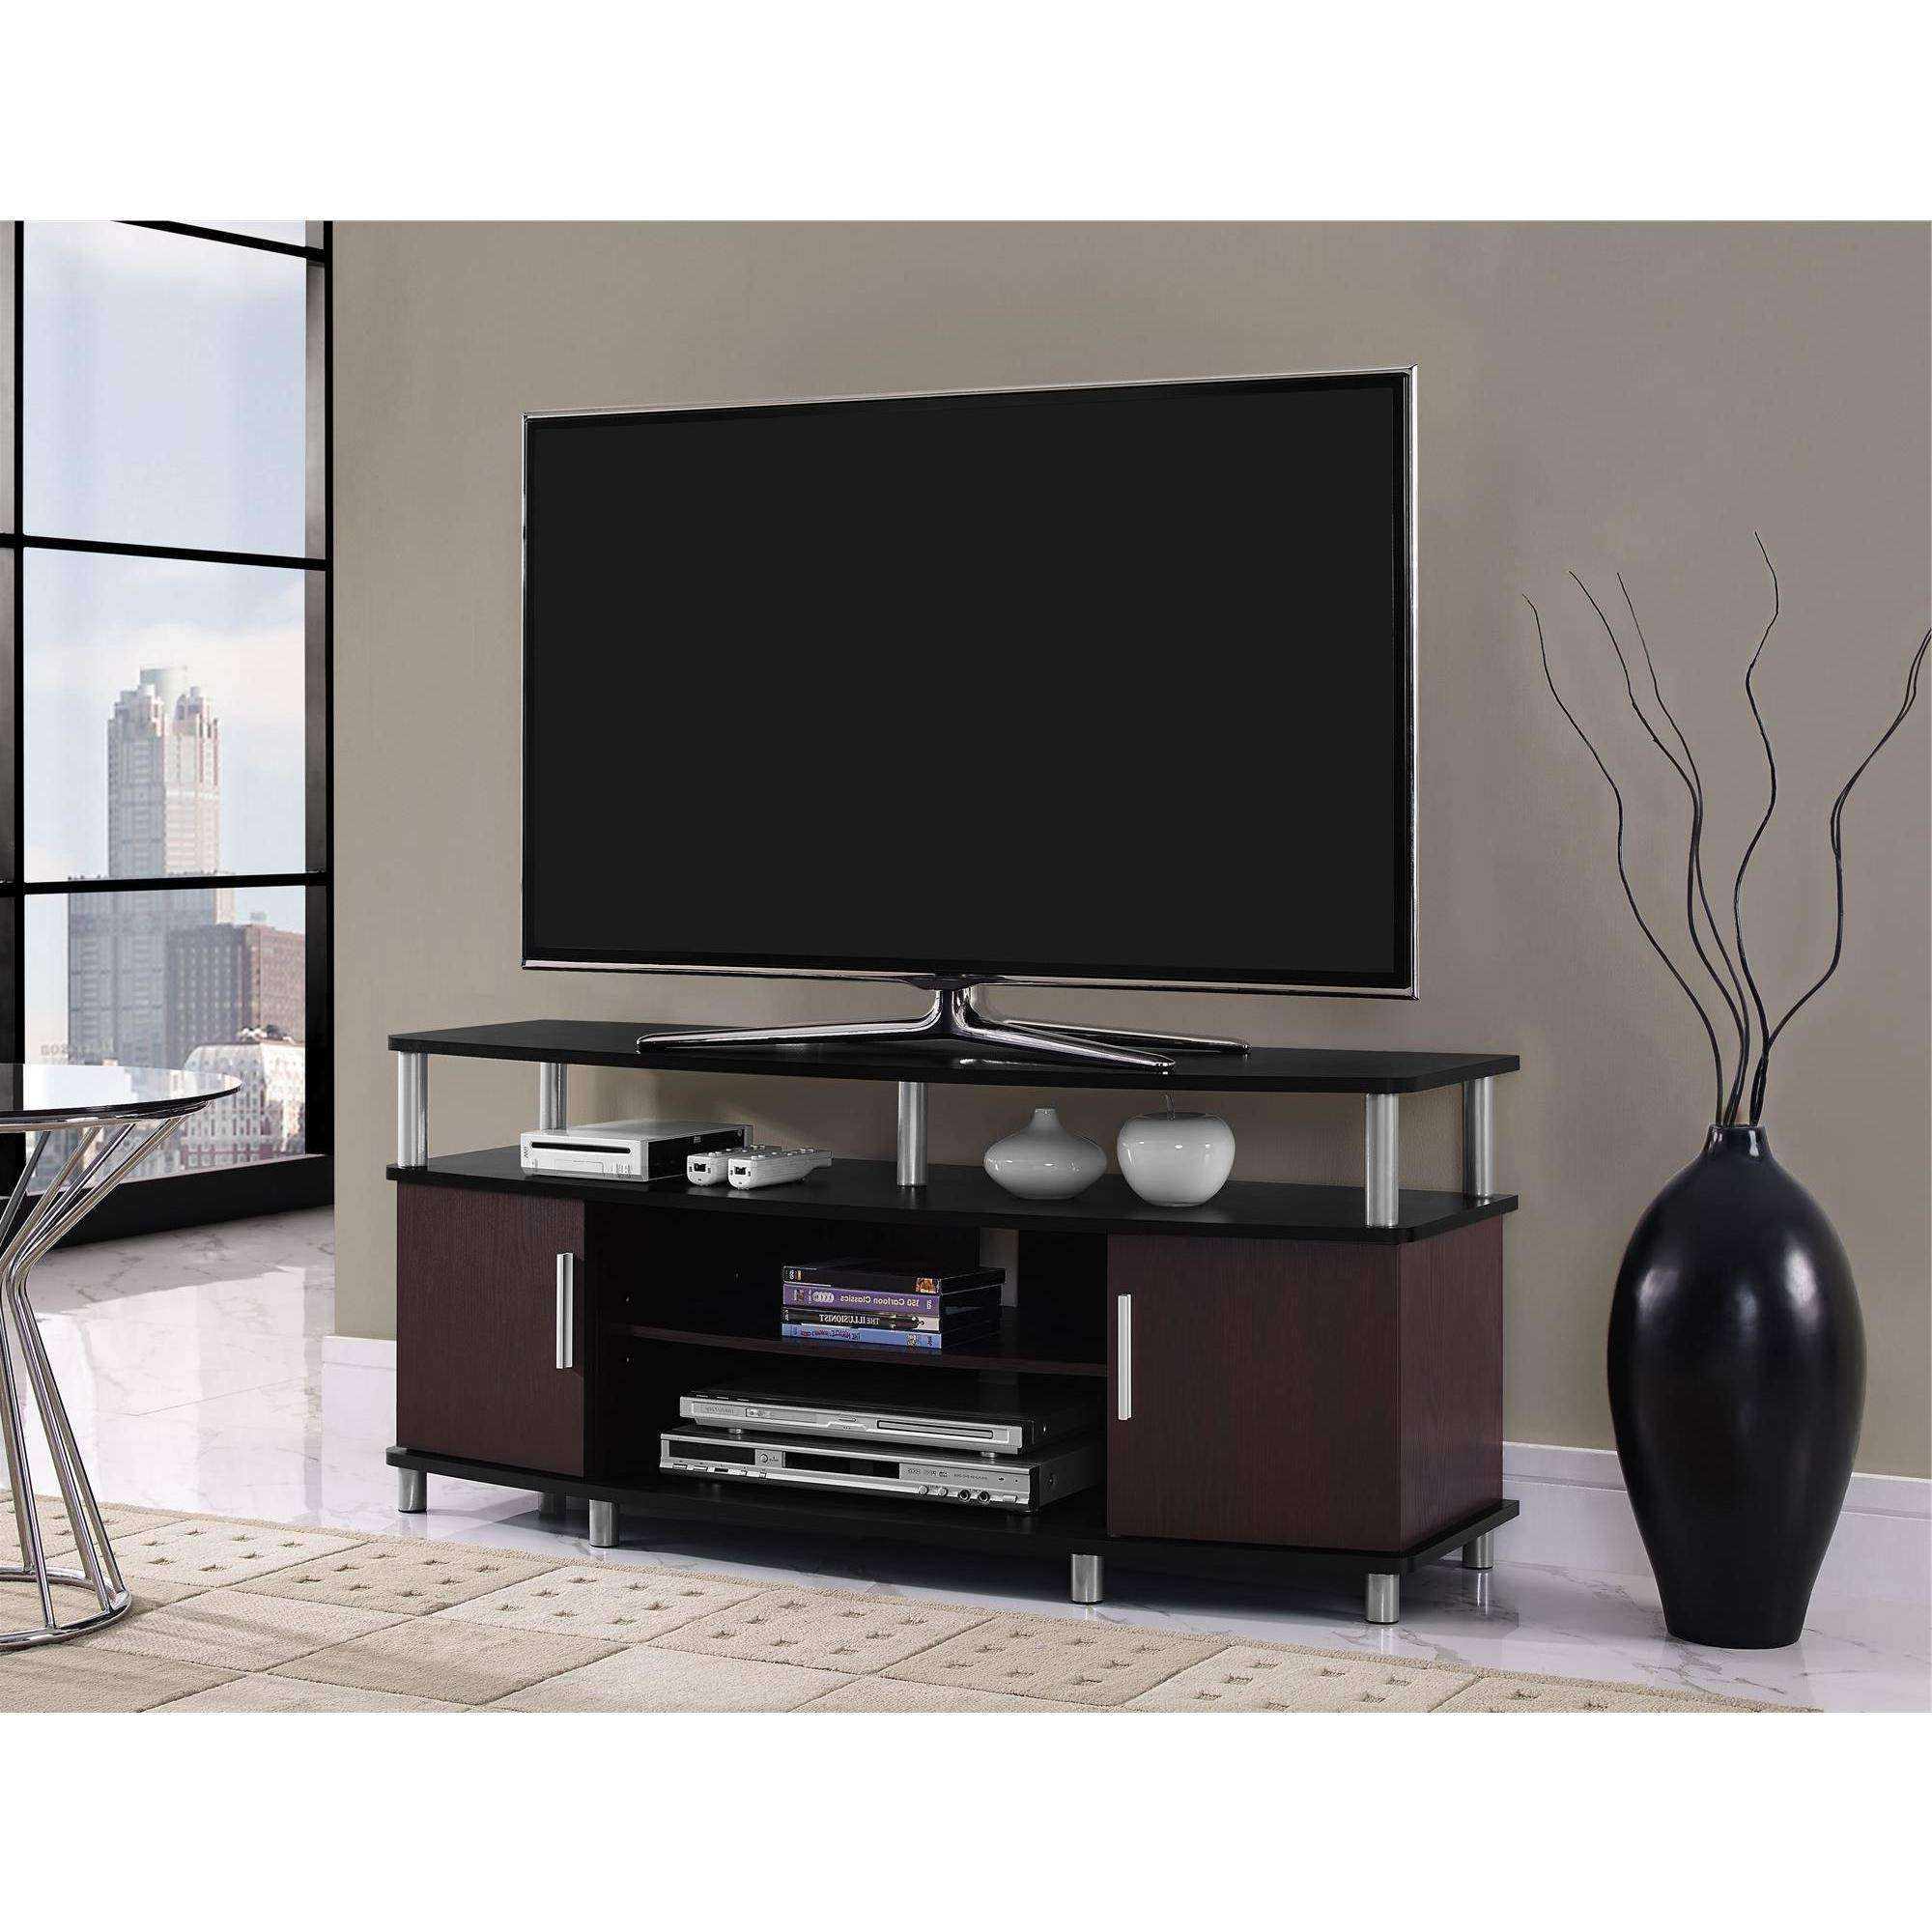 Tv Stands & Entertainment Centers – Walmart Regarding Black Corner Tv Stands For Tvs Up To (View 13 of 20)